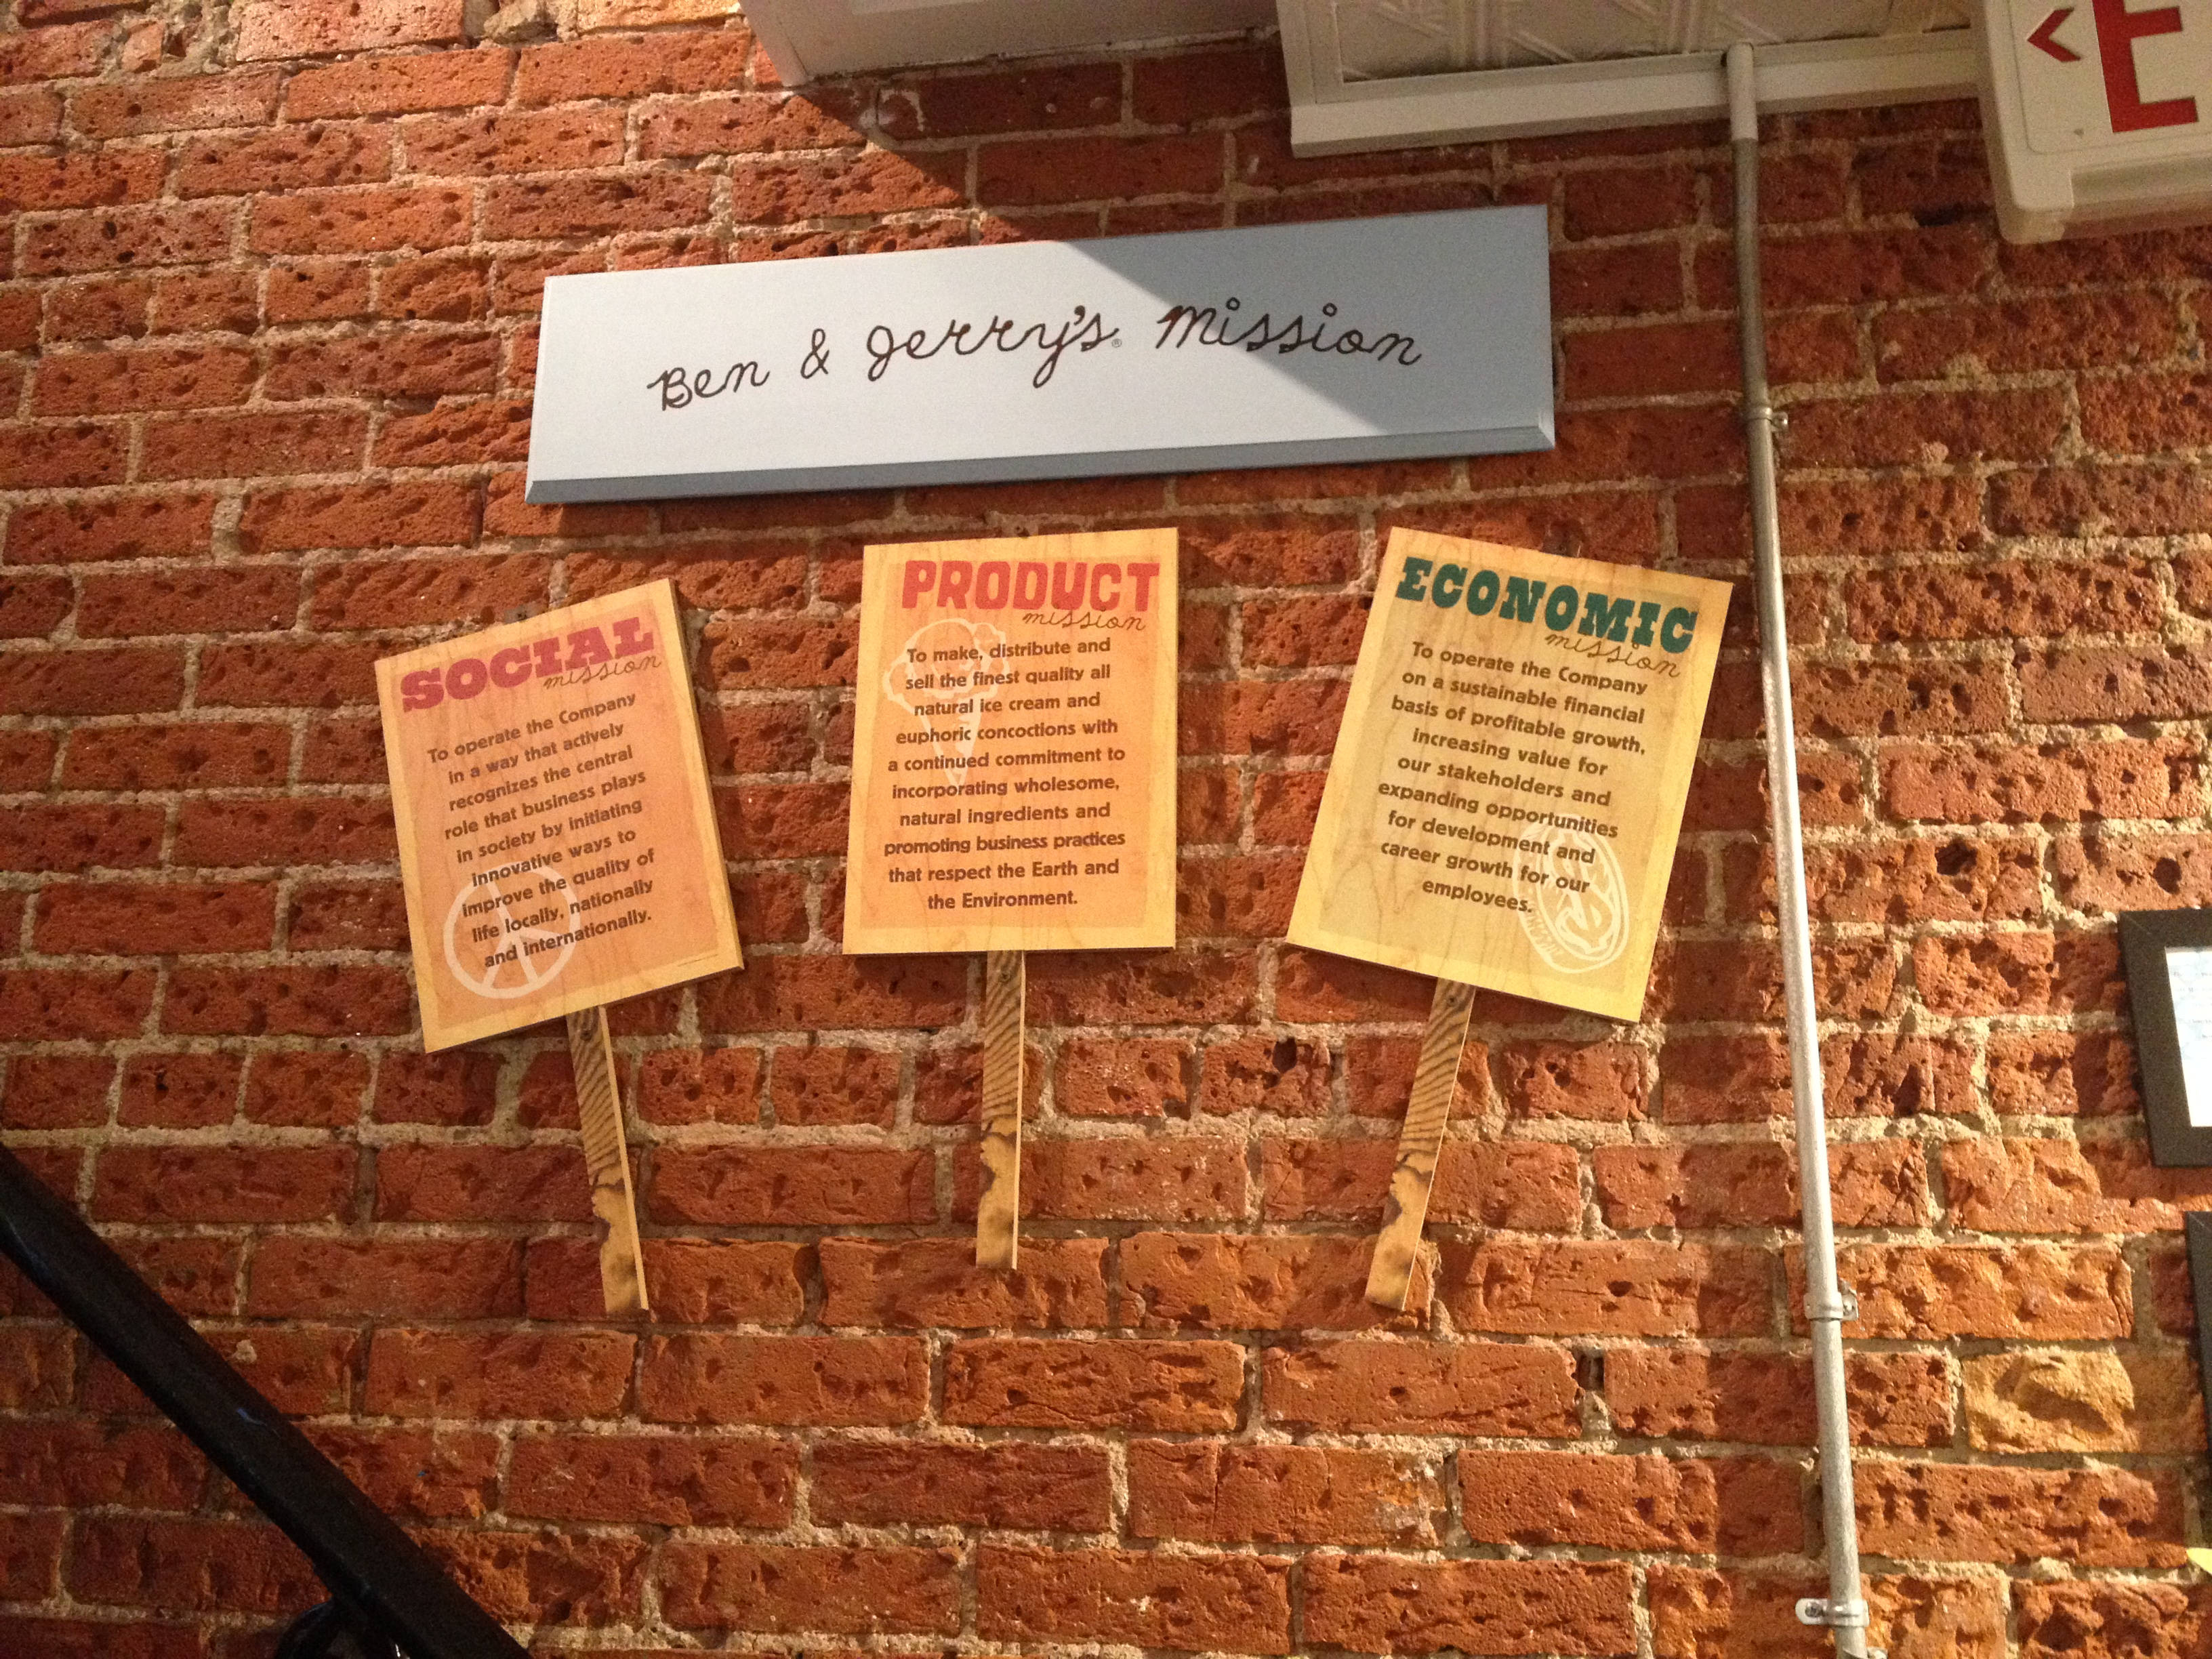 Ben & Jerry's has their three-part mission posted in their shop. | Photo by Hallie Smith